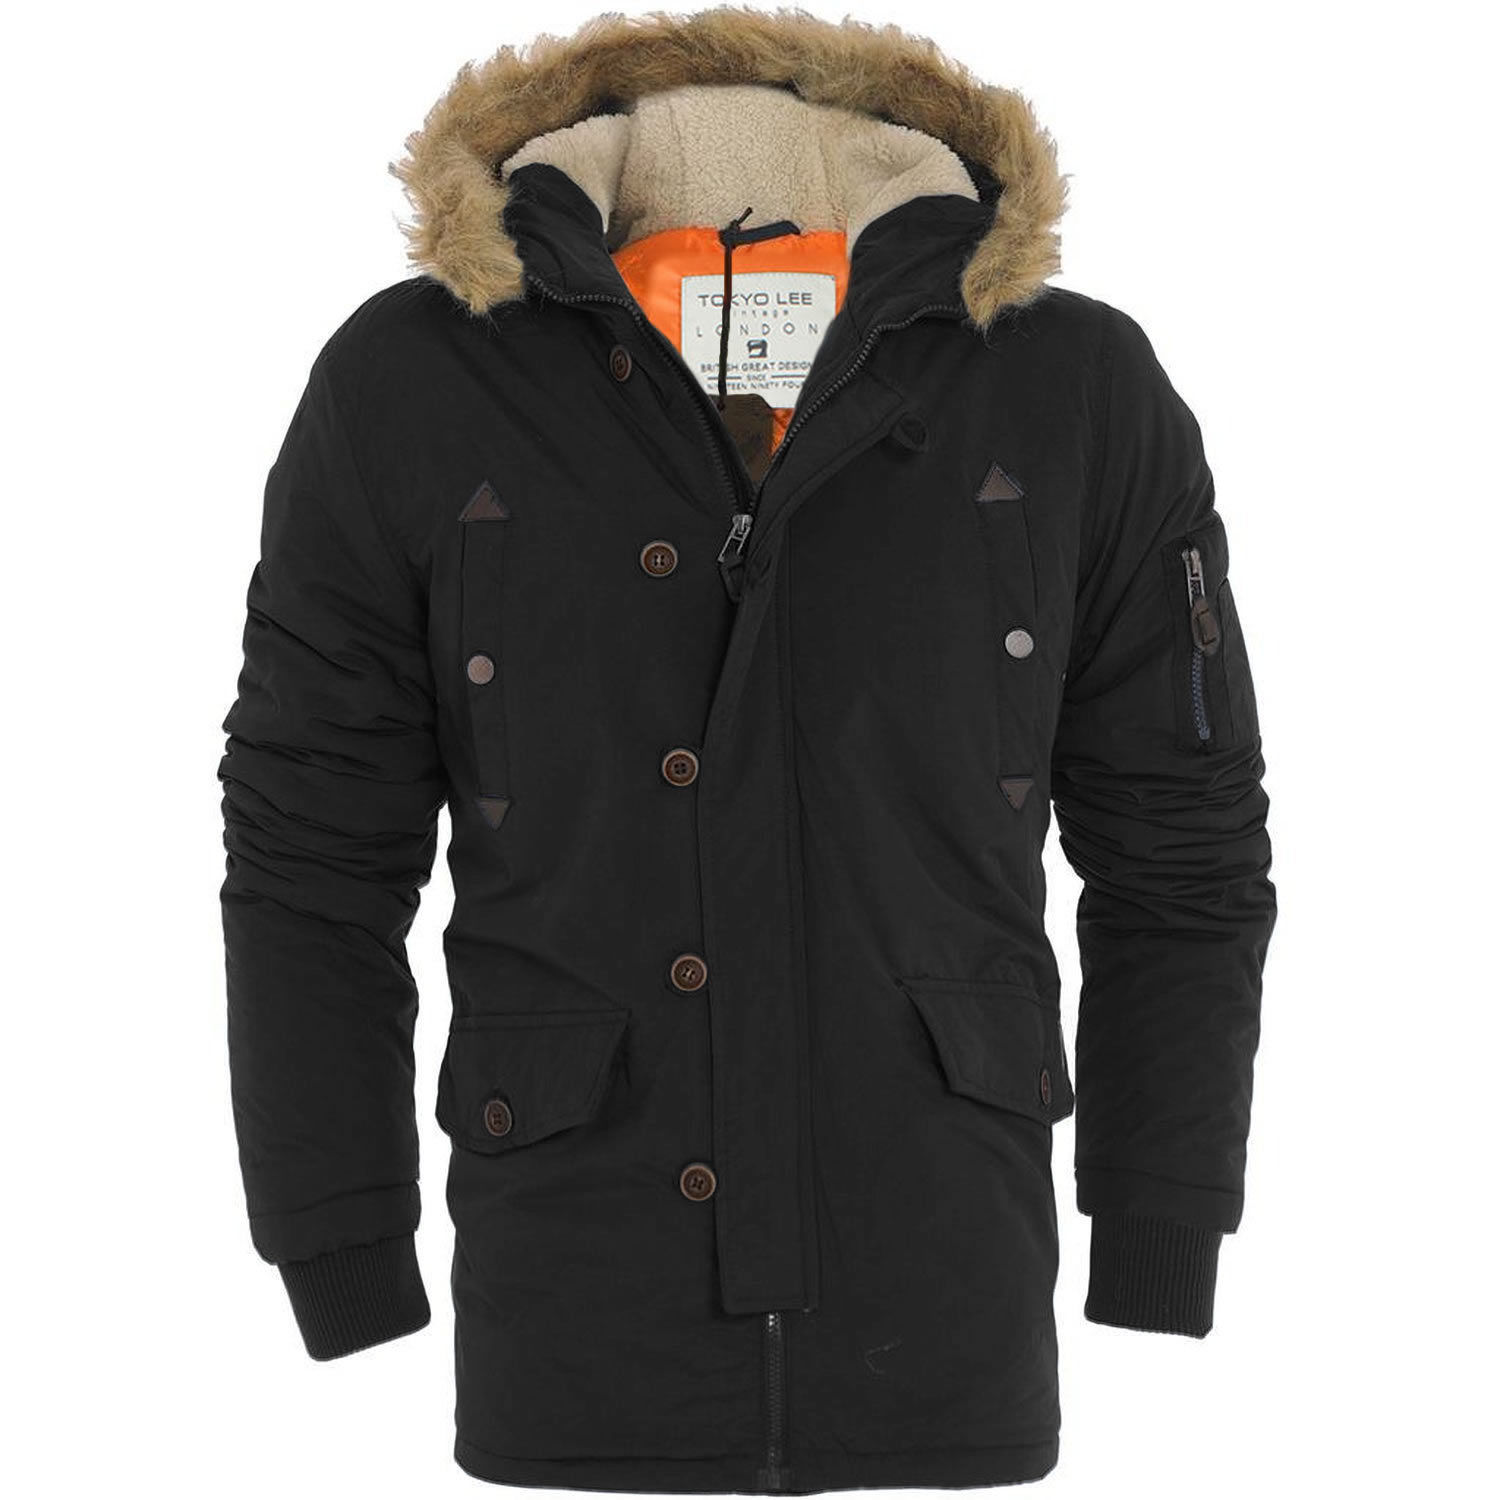 Mens Tokyo Lee Parka Parker Padded Lined Winter Jacket